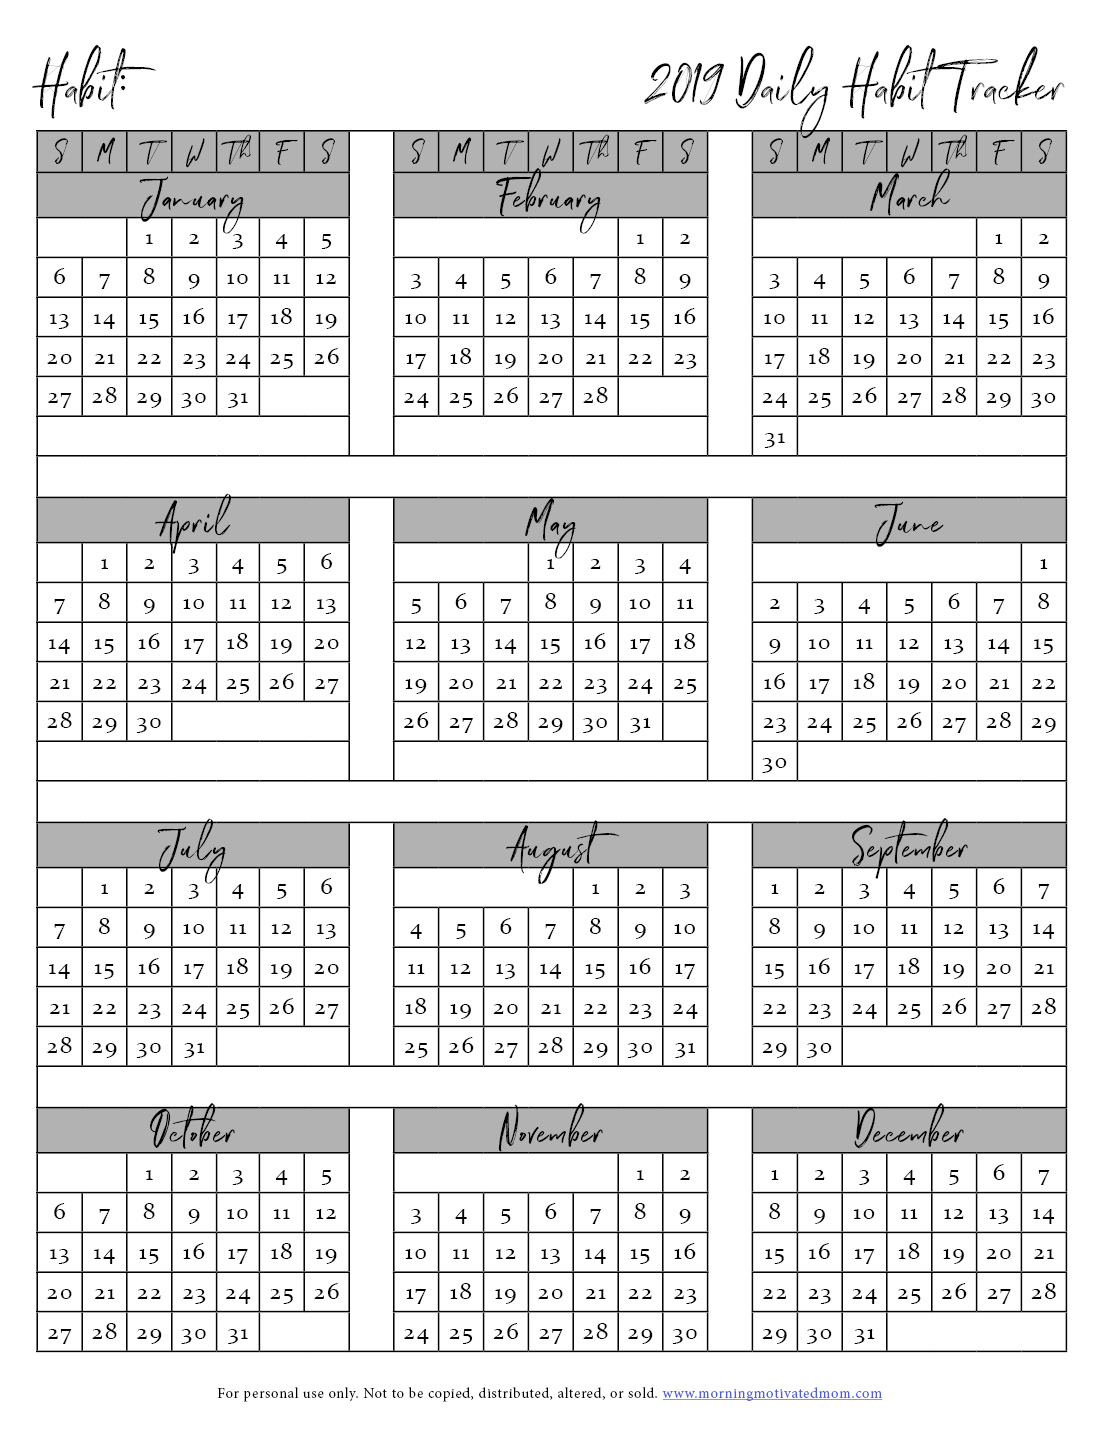 photo regarding Daily Habit Tracker Printable called Totally free Printable Behavior Tracker Early morning Impressed Mother